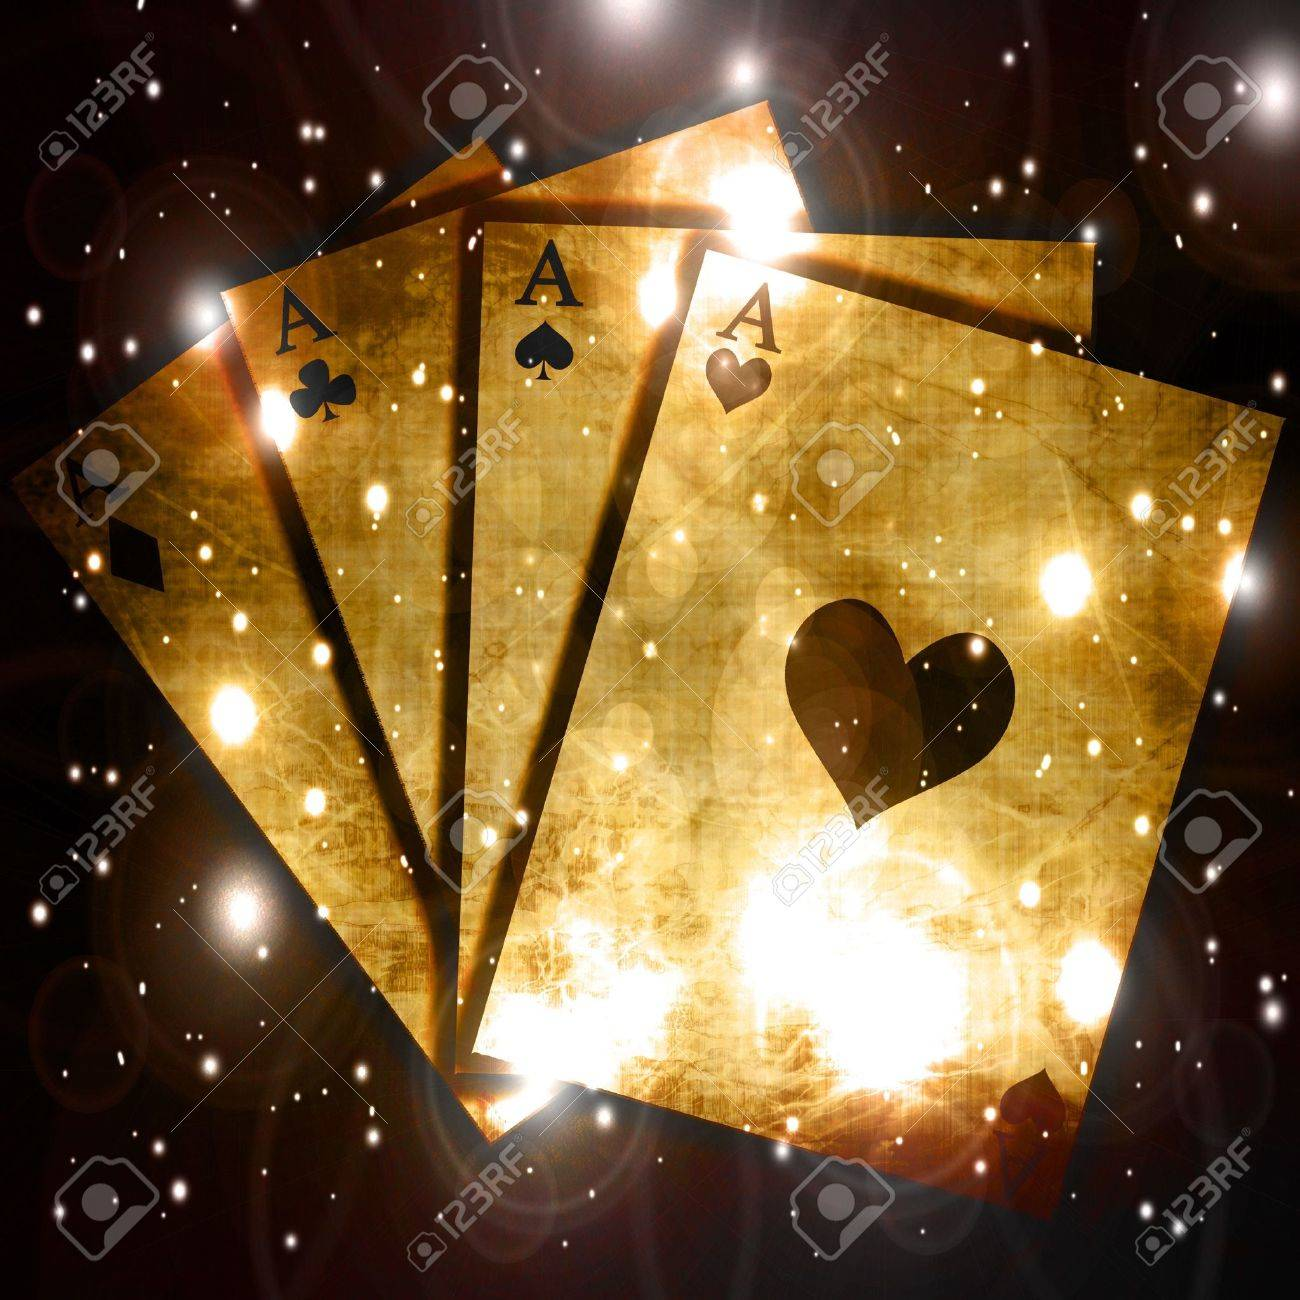 Poker table background - Poker Table With Soft Center Focus And Cards Stock Photo 3640297